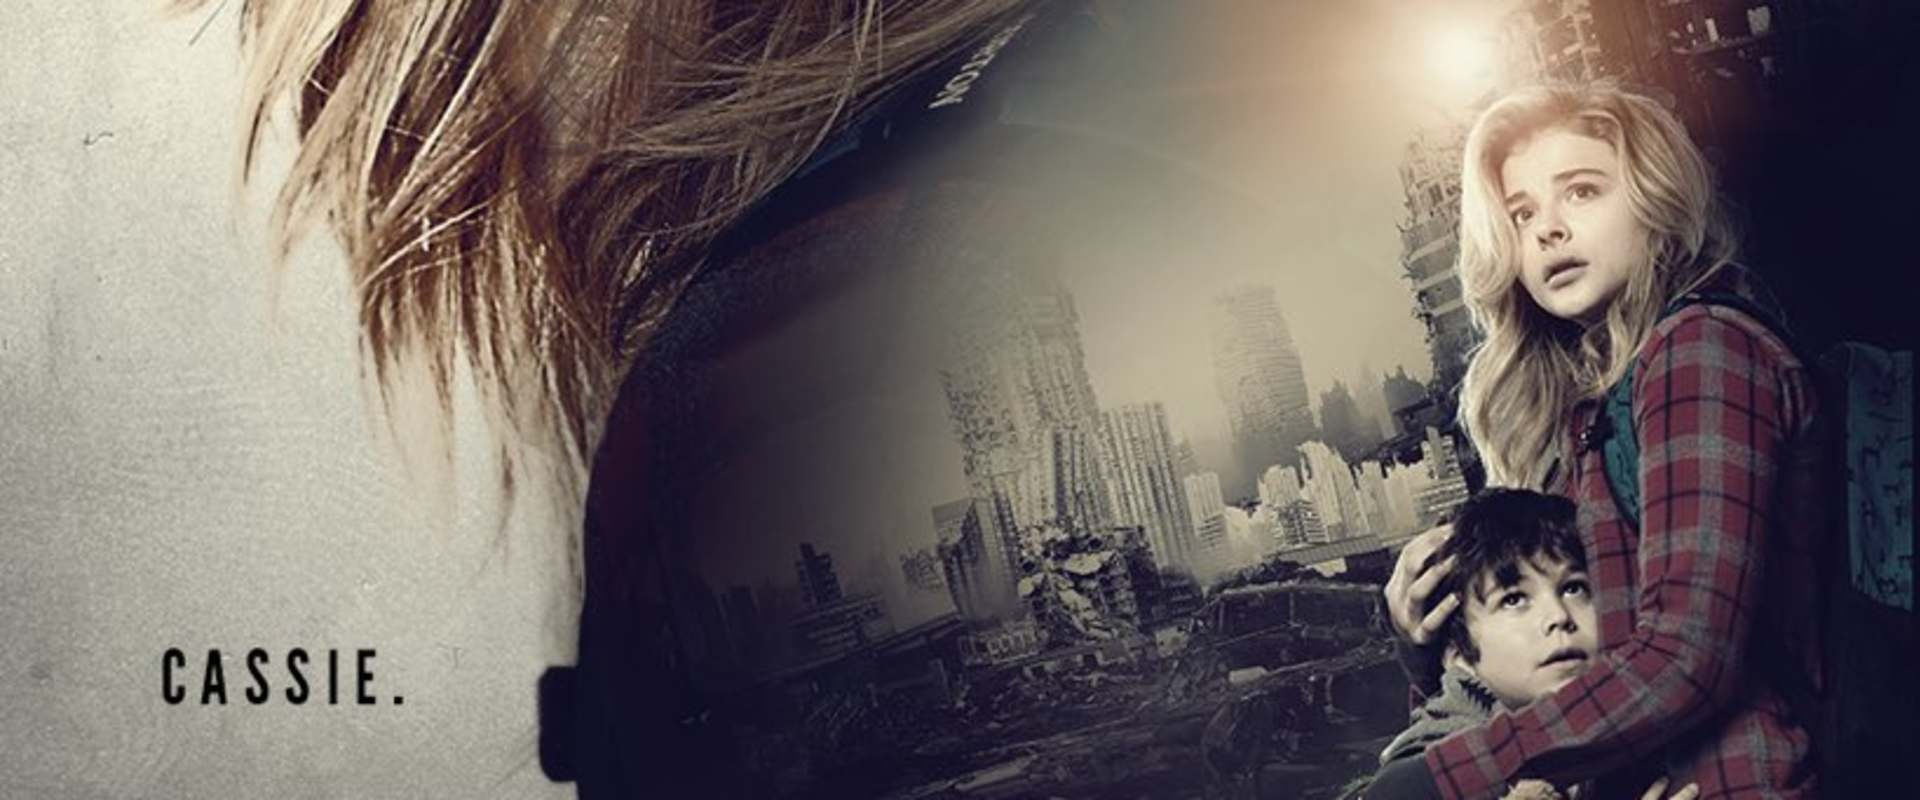 The 5th Wave background 2